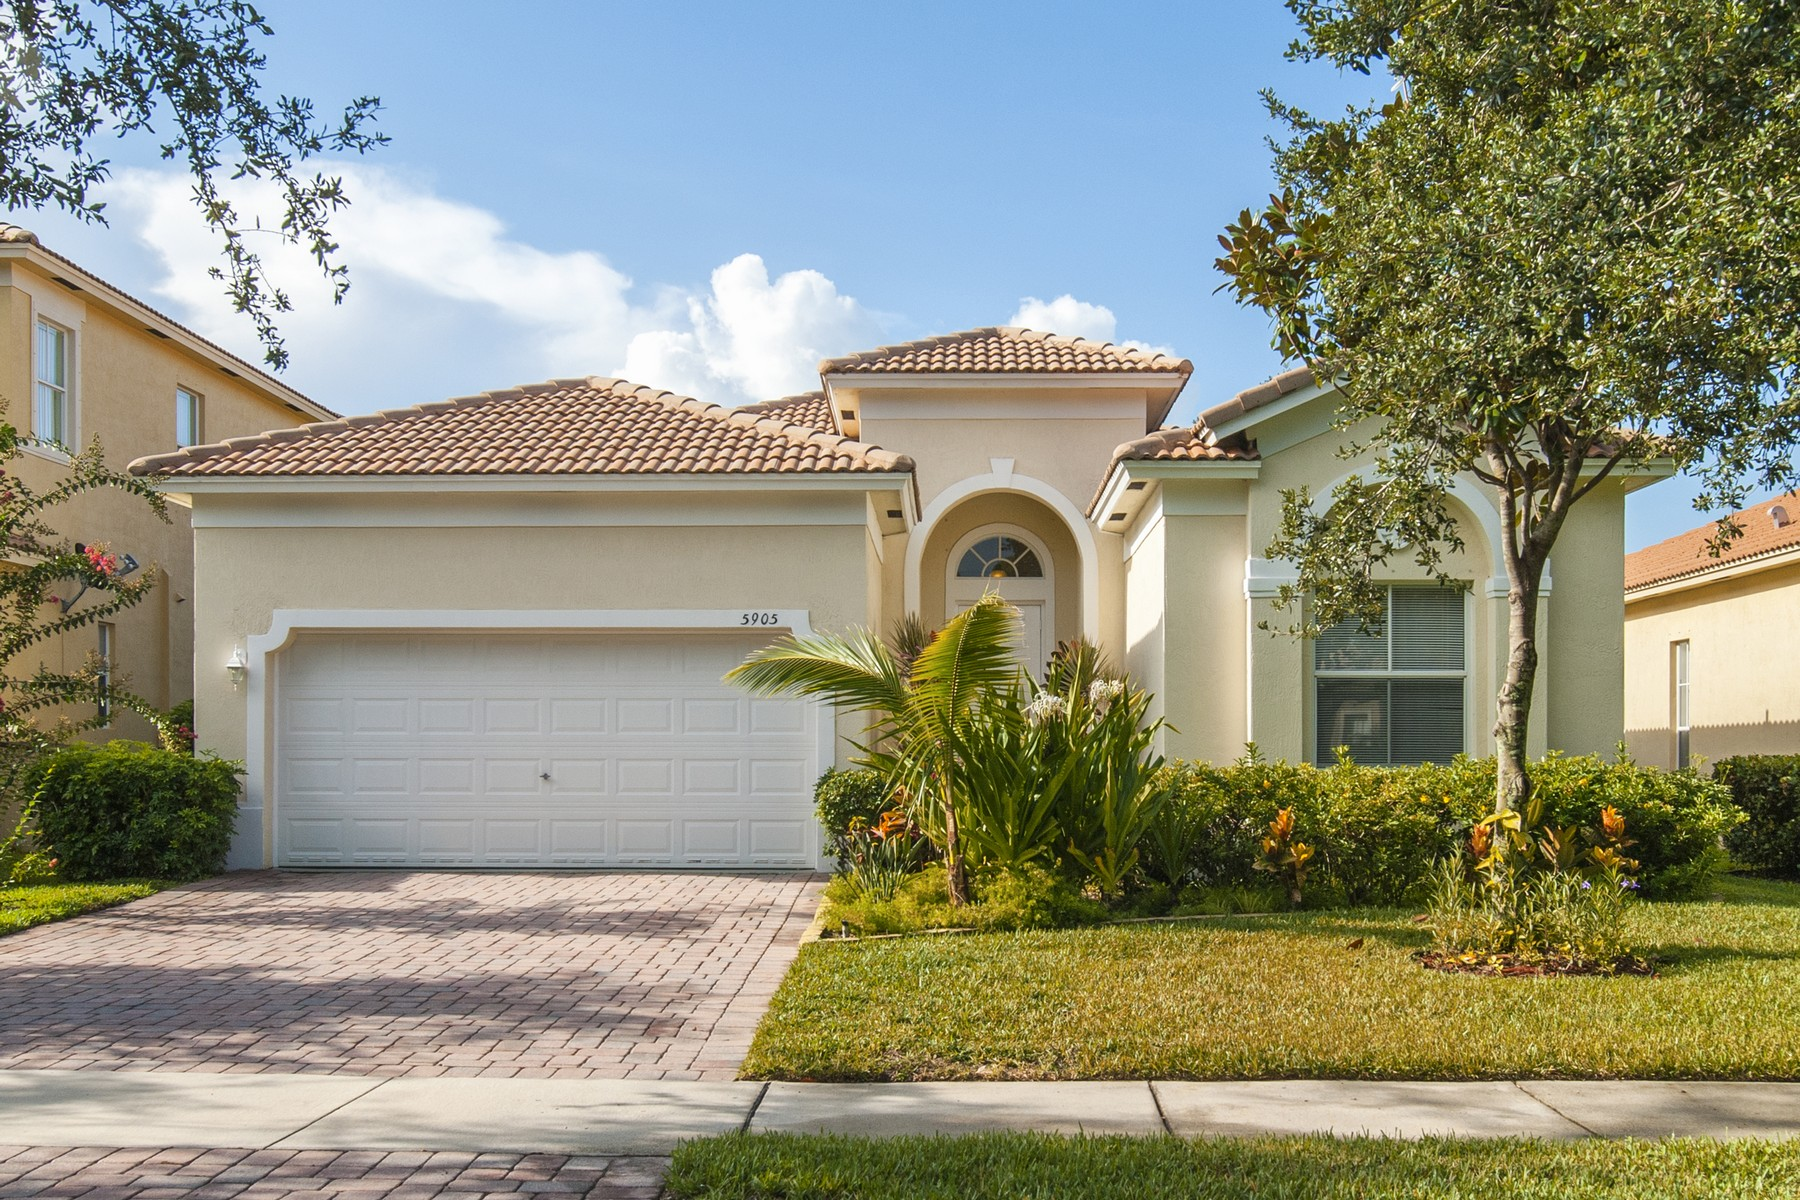 Single Family Homes のために 賃貸 アット Beautfully Maintained Home in Resort Style Gated Community 5905 Spring Lake Terrace Fort Pierce, フロリダ 34951 アメリカ